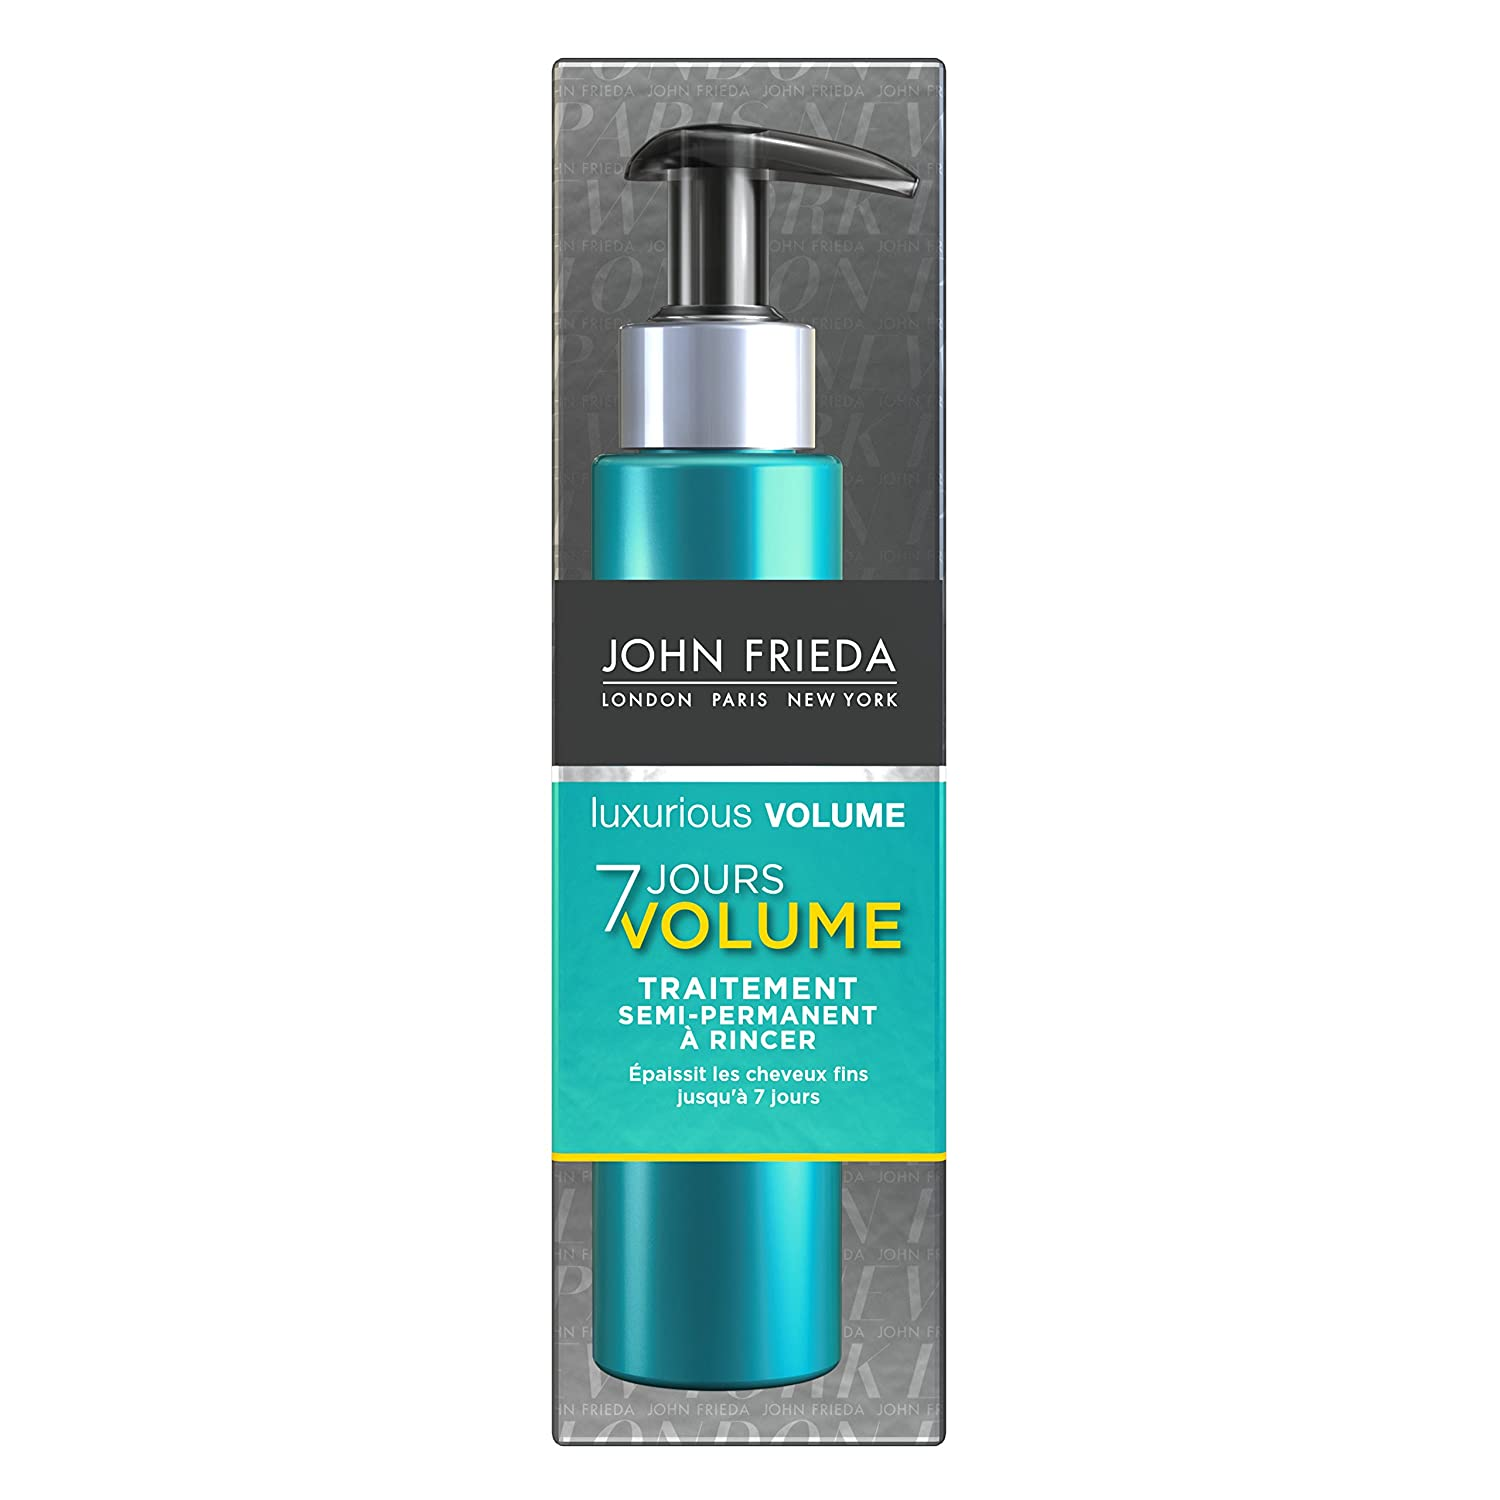 John Frieda Luxurious Volume Trattamento Semi-Permanent a Sciacquare 7 giorni 100 ml